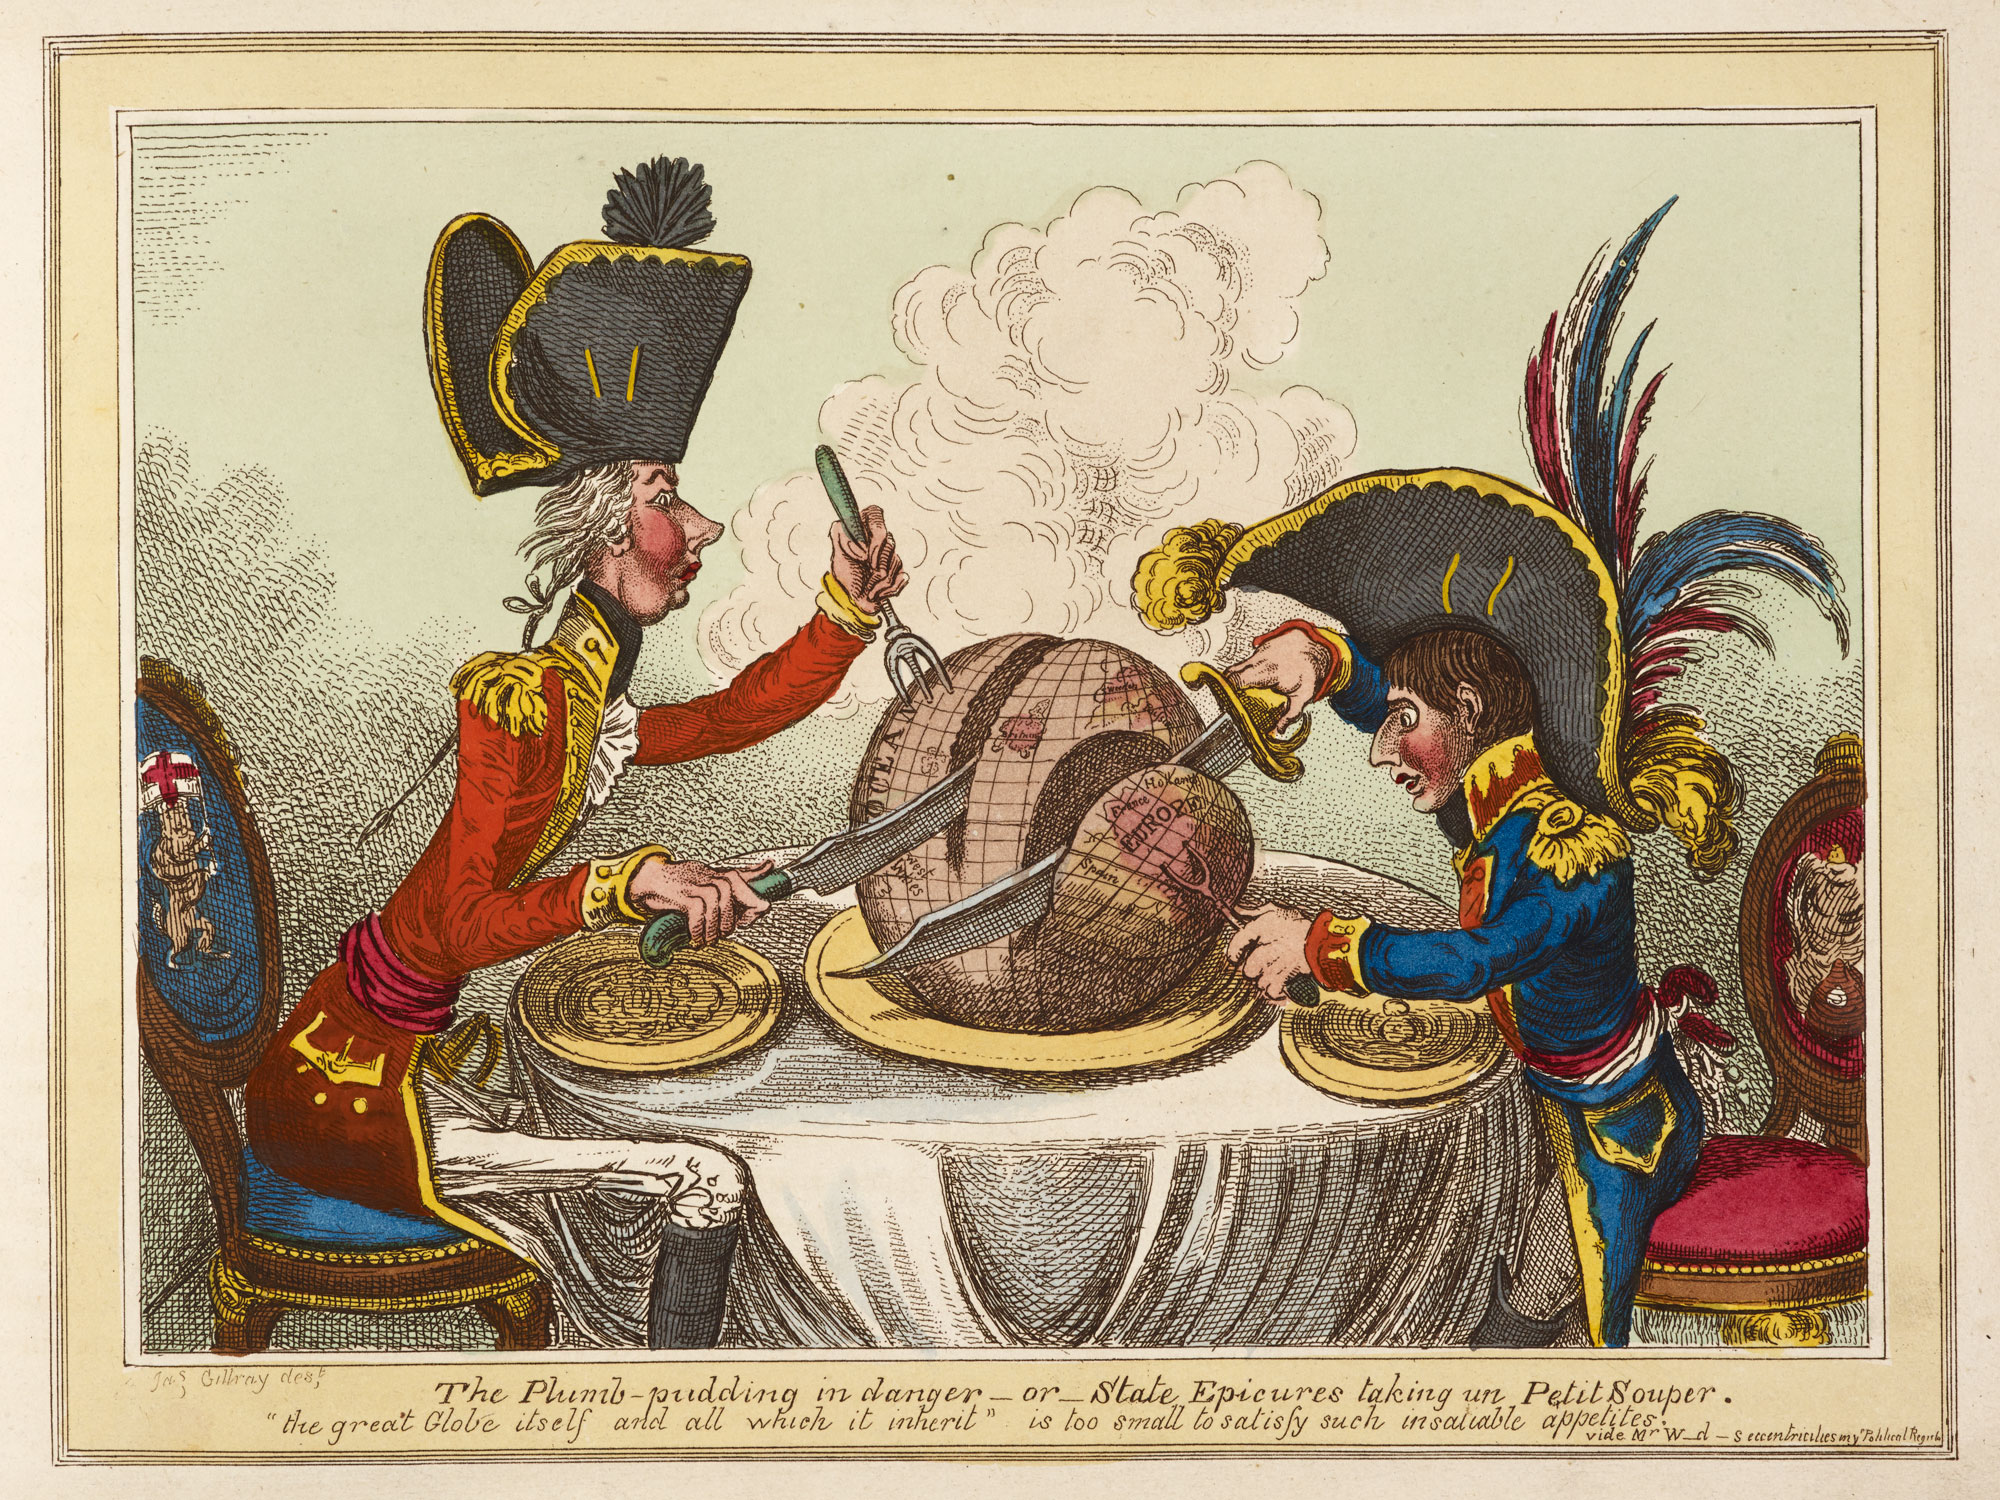 The Plumb-pudding in danger - or - State Epicures taking un Petit Souper' by Gillray [page: facing p. 56]